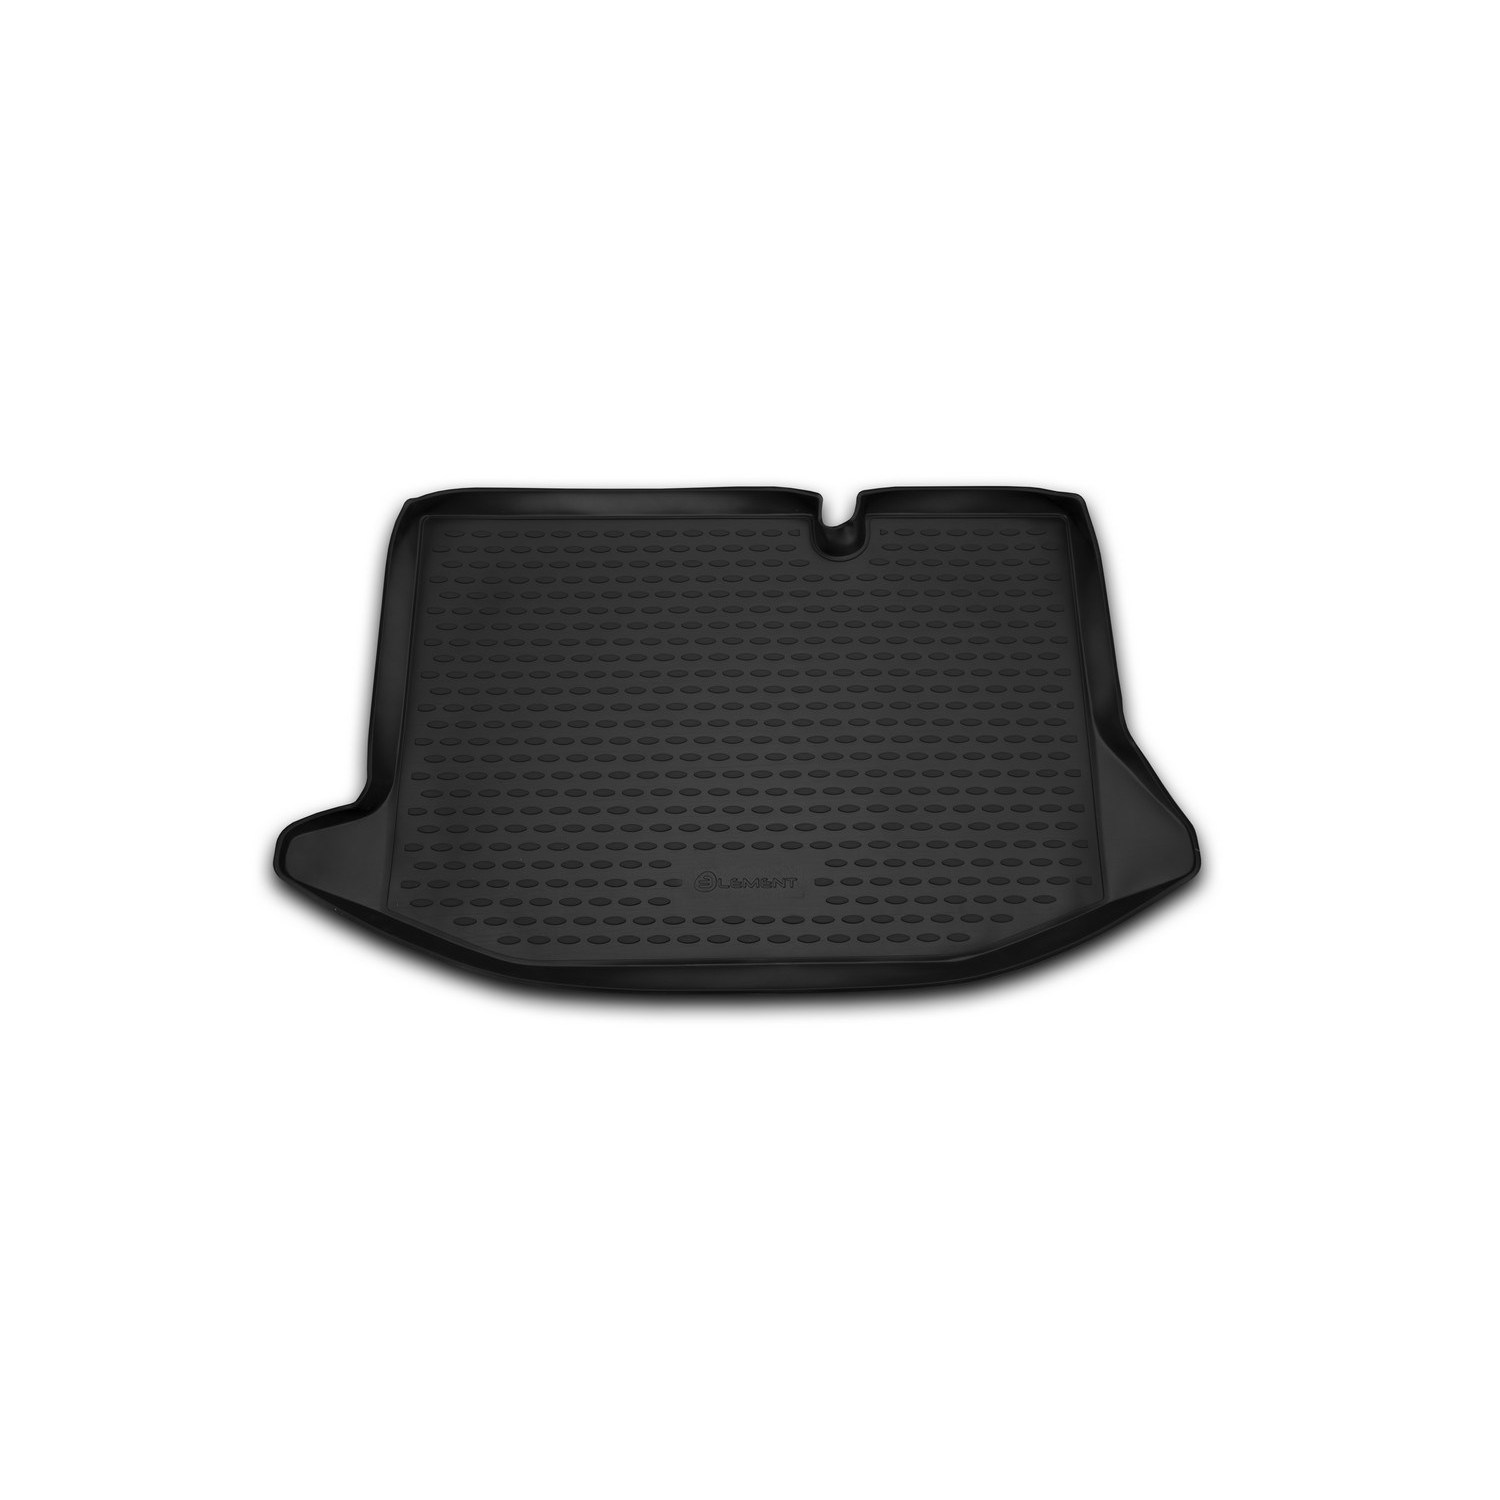 Trunk Mat For FORD Fiesta 2015, The SED. 1 PCs ORIG.16.75.11.200